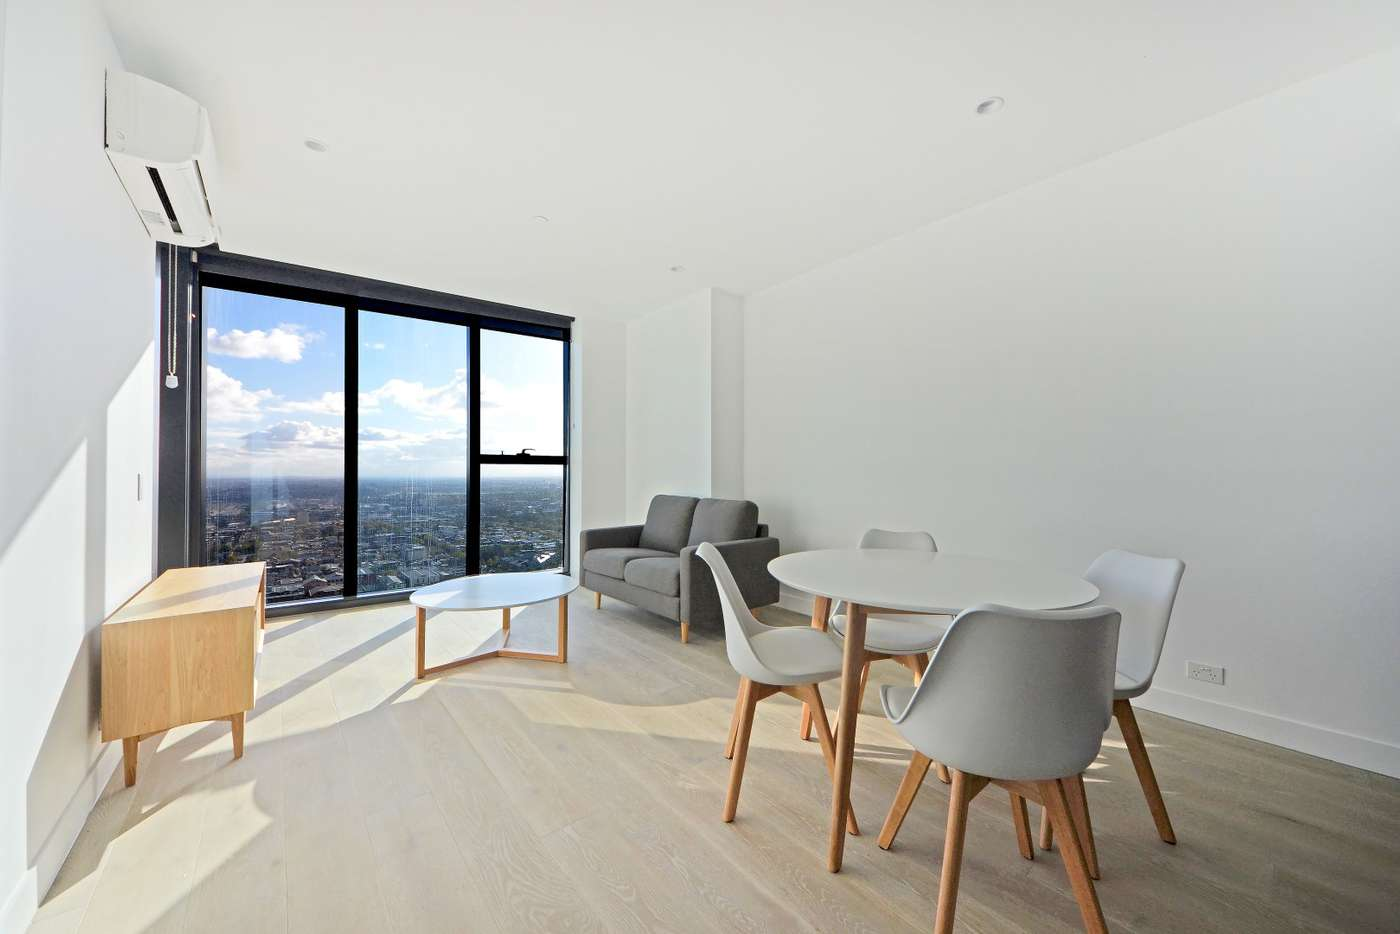 Main view of Homely house listing, 3910/160 Victoria Street, Carlton VIC 3053